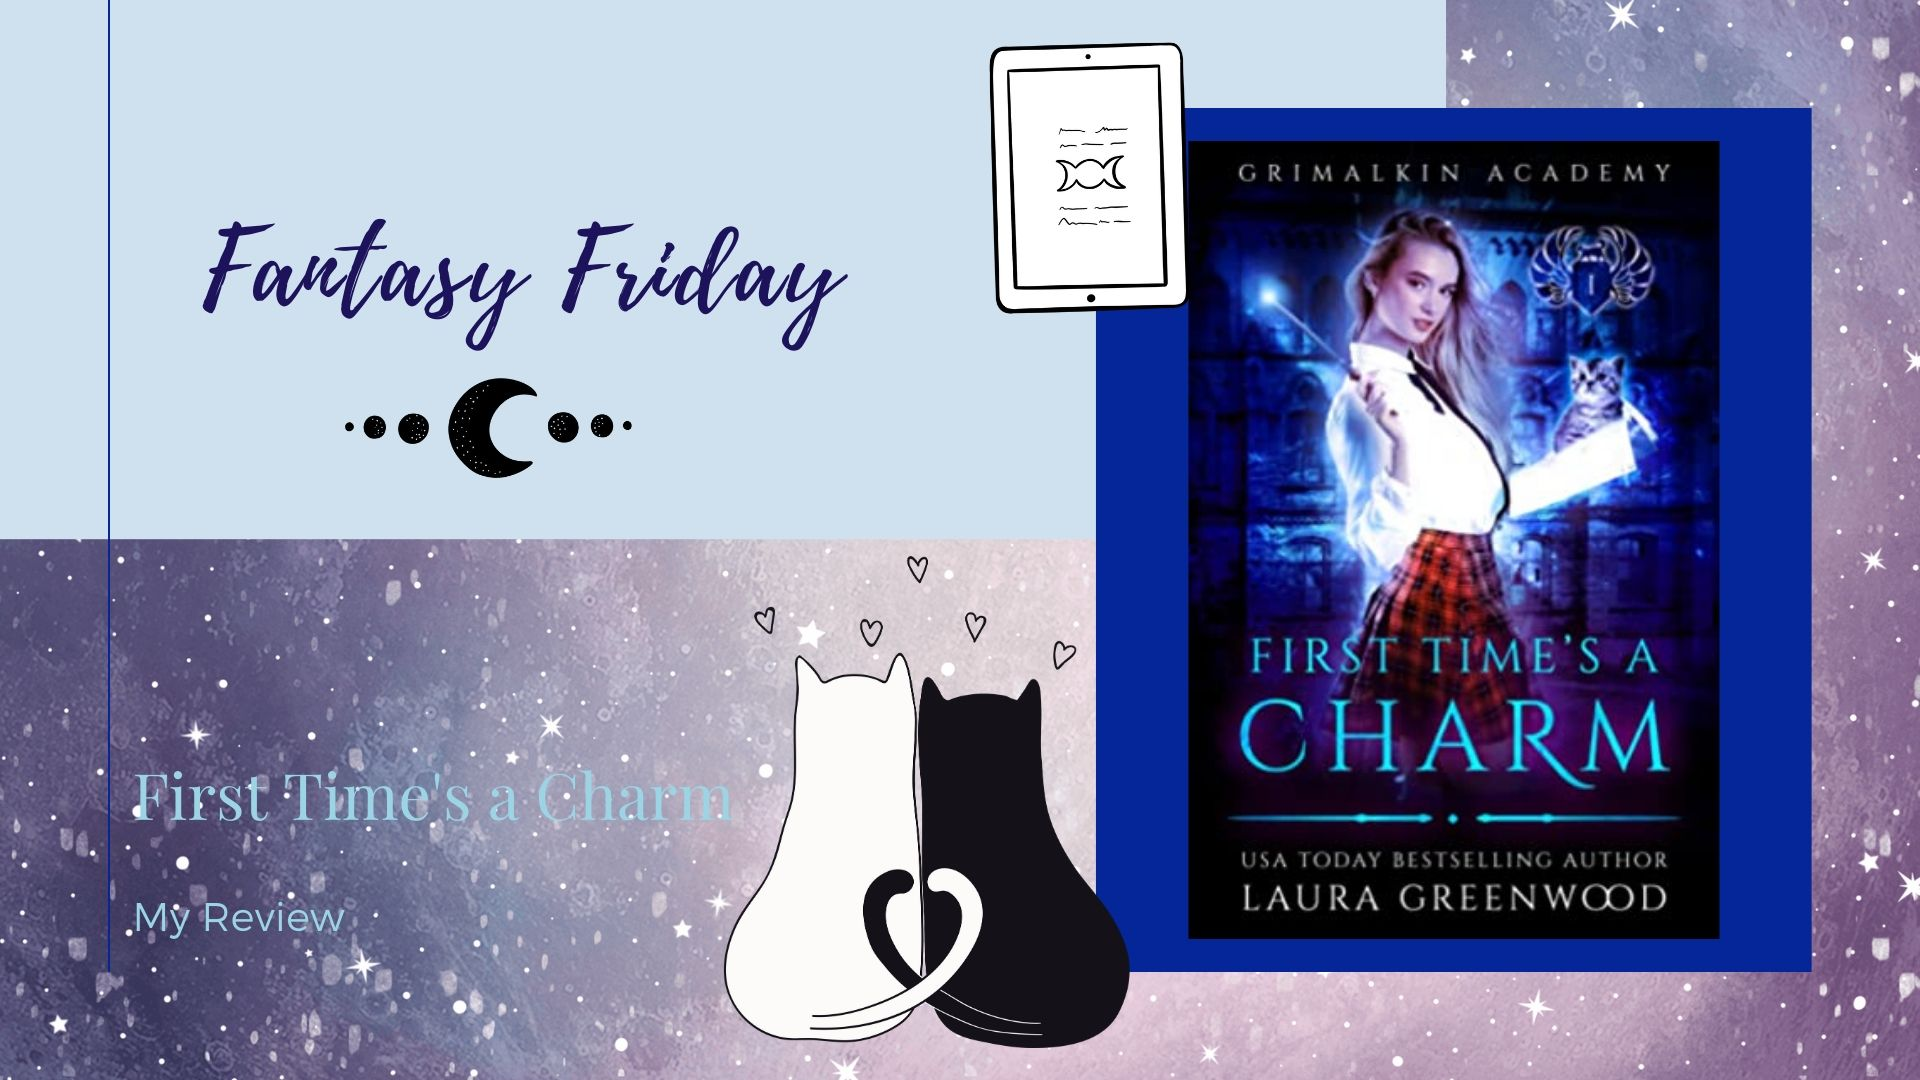 Fantasy Friday: First Time's a Charm by Laura Greenwood